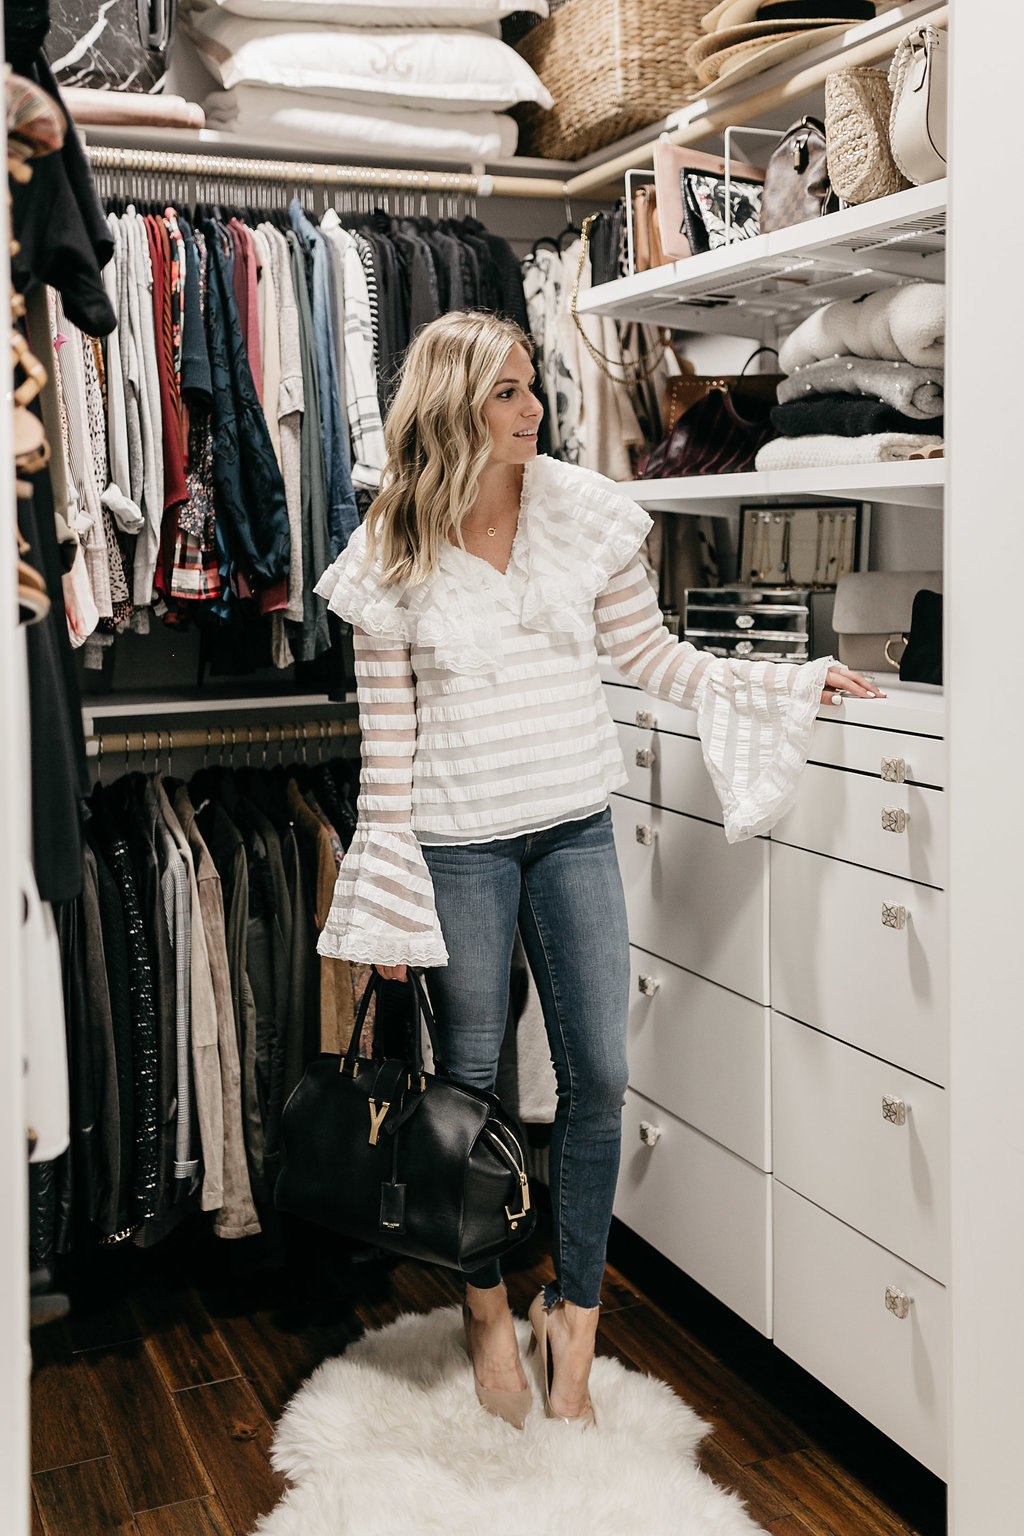 MY CLOSET ORGANIZATION REVEAL + STYLE TIPS